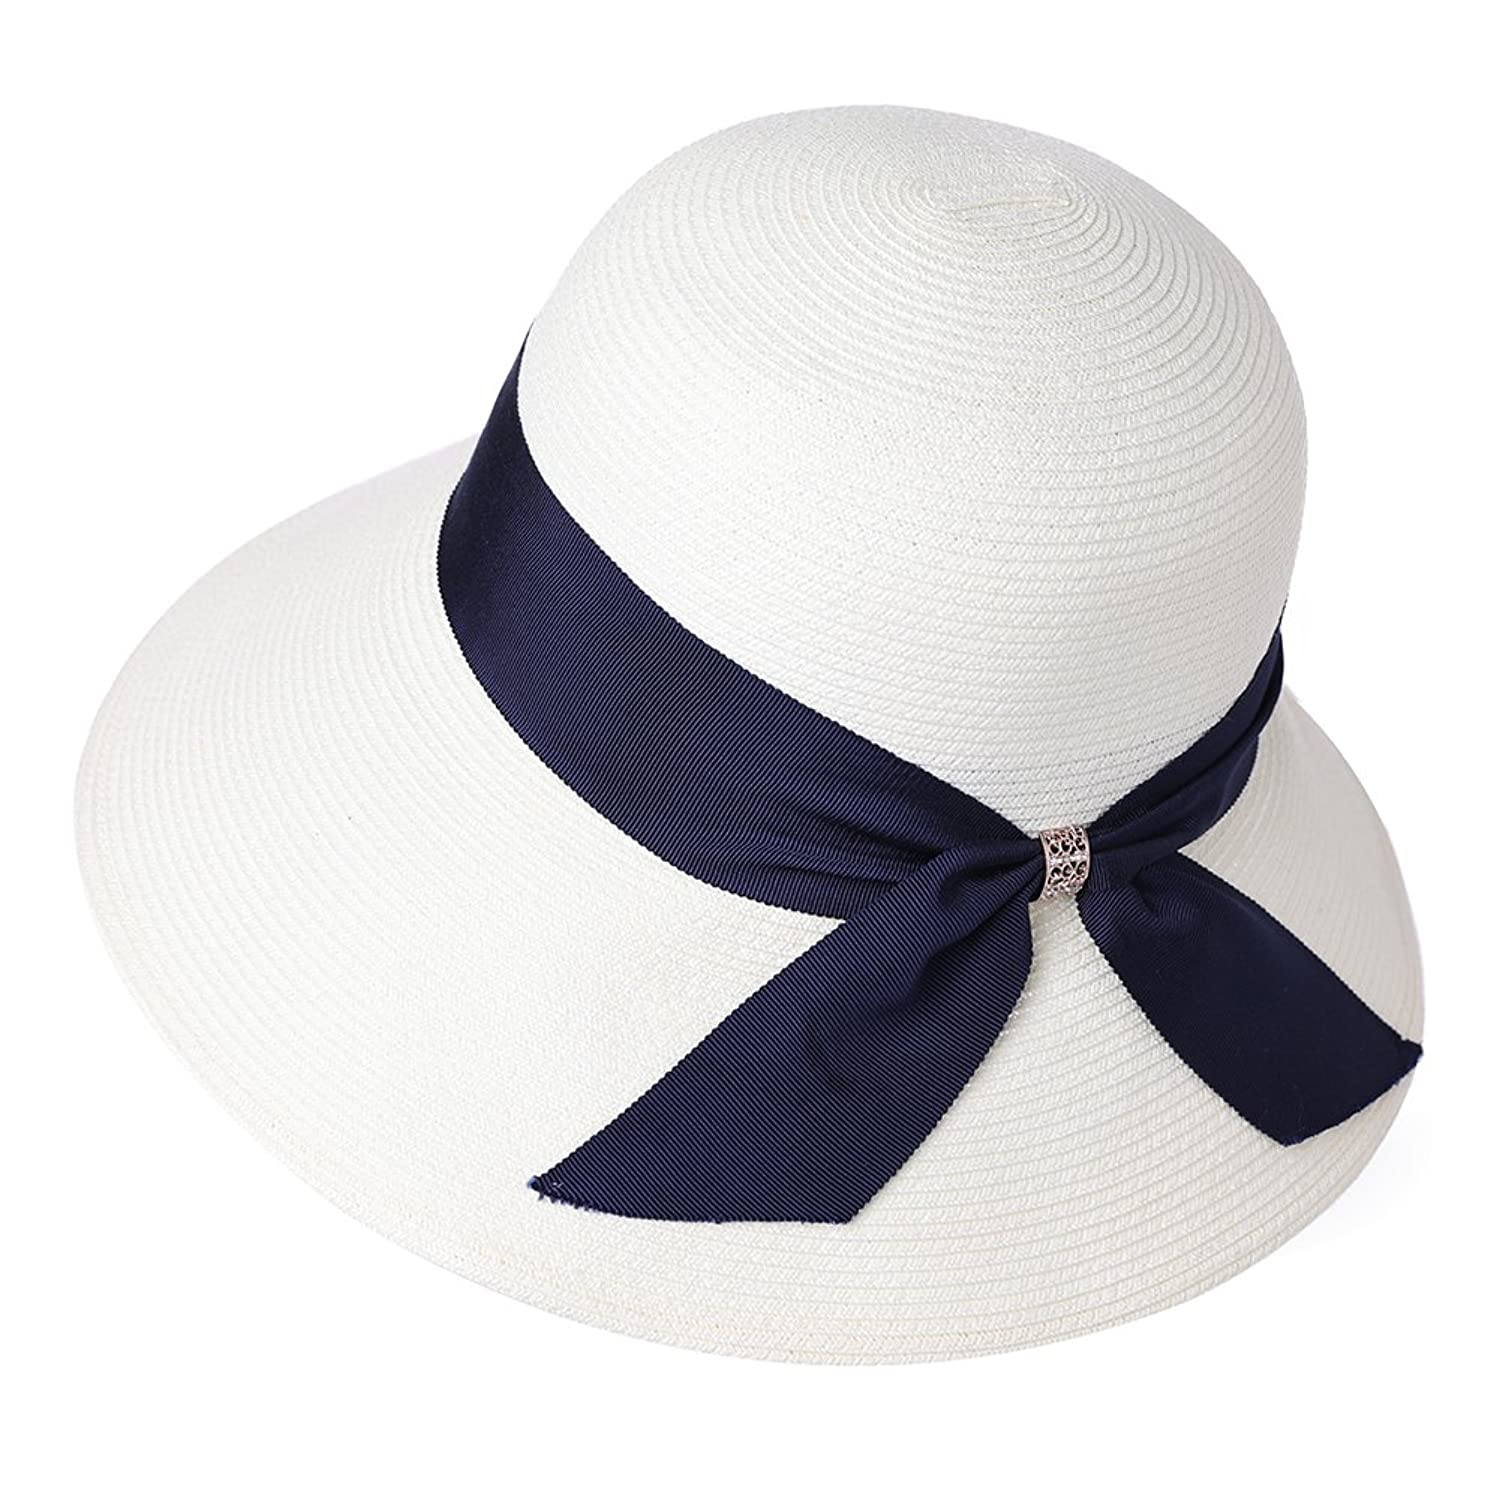 1920s Accessories | Great Gatsby Accessories Guide SiggiHat Packable UPF Straw Sunhat Women Summer Beach Wide Brim Fedora Travel Hat Bowknot $19.99 AT vintagedancer.com